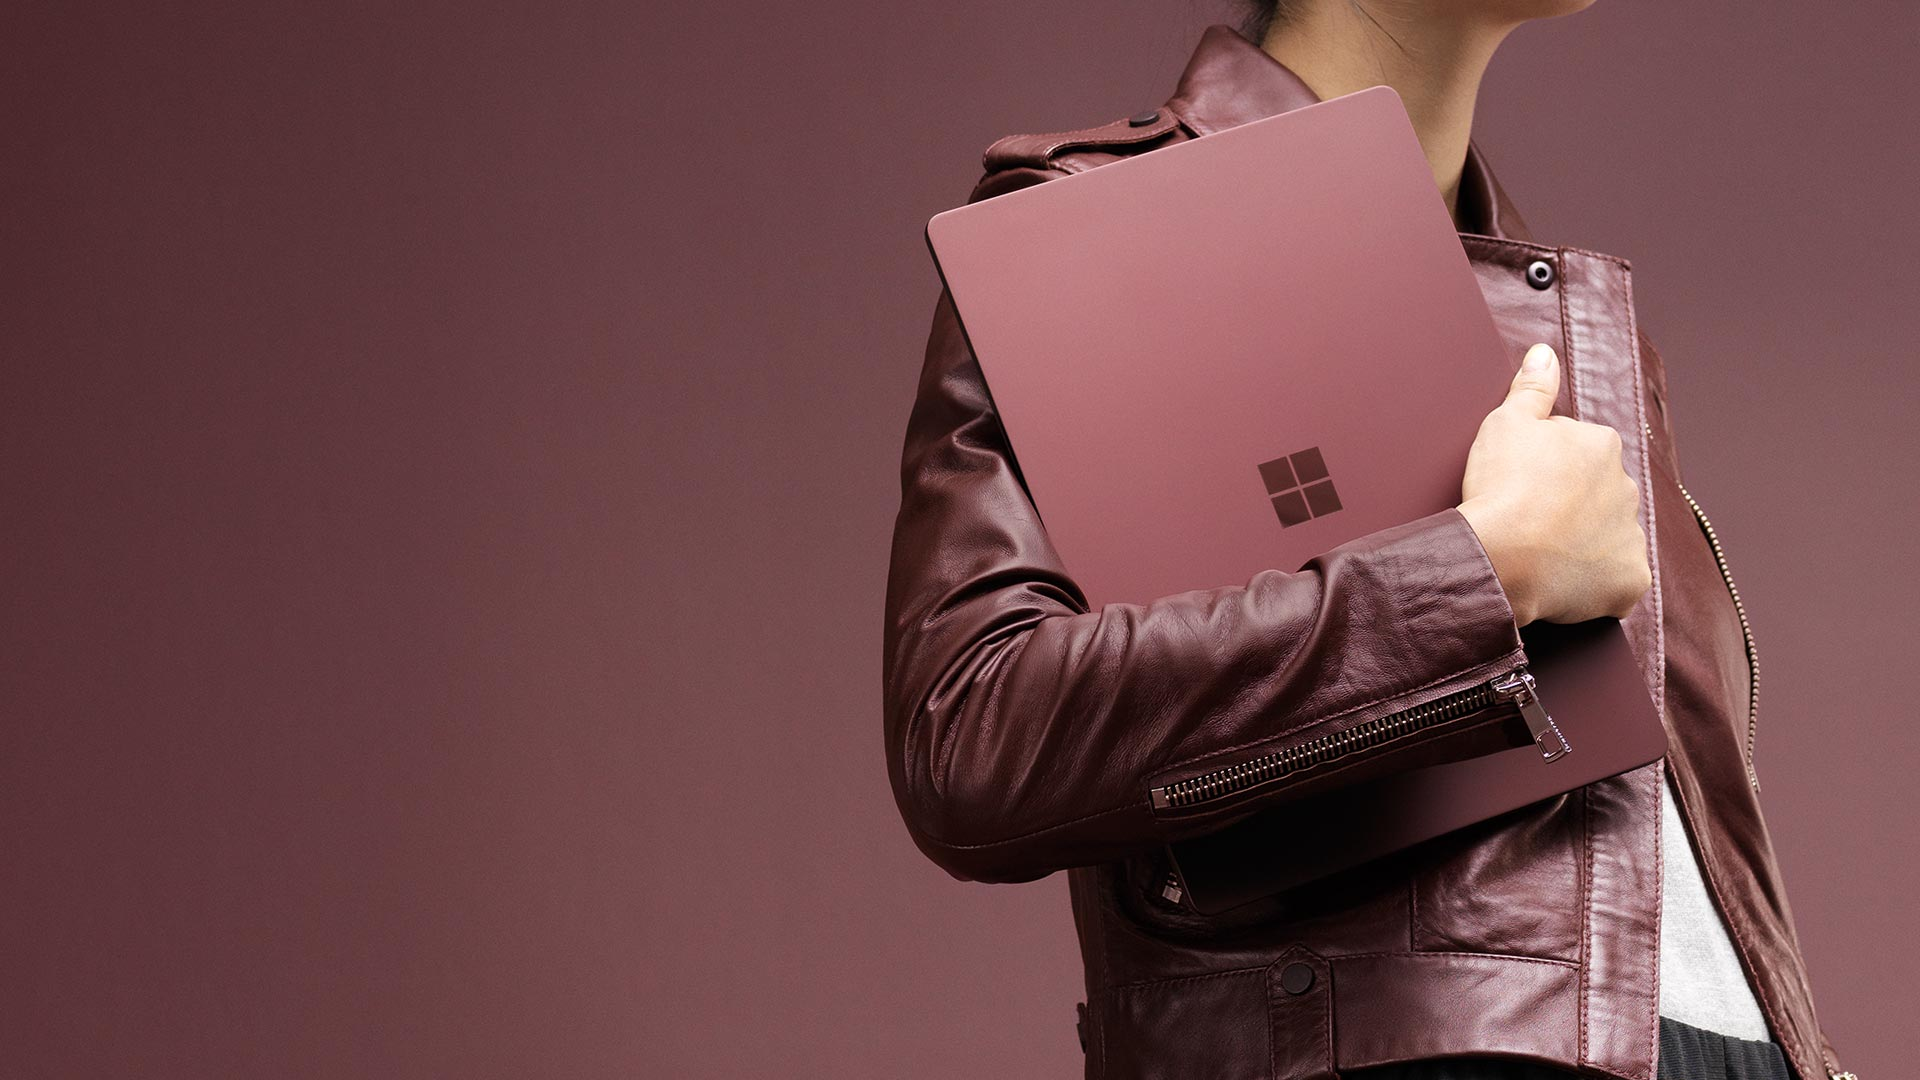 女人拿著酒紅色 Surface Laptop